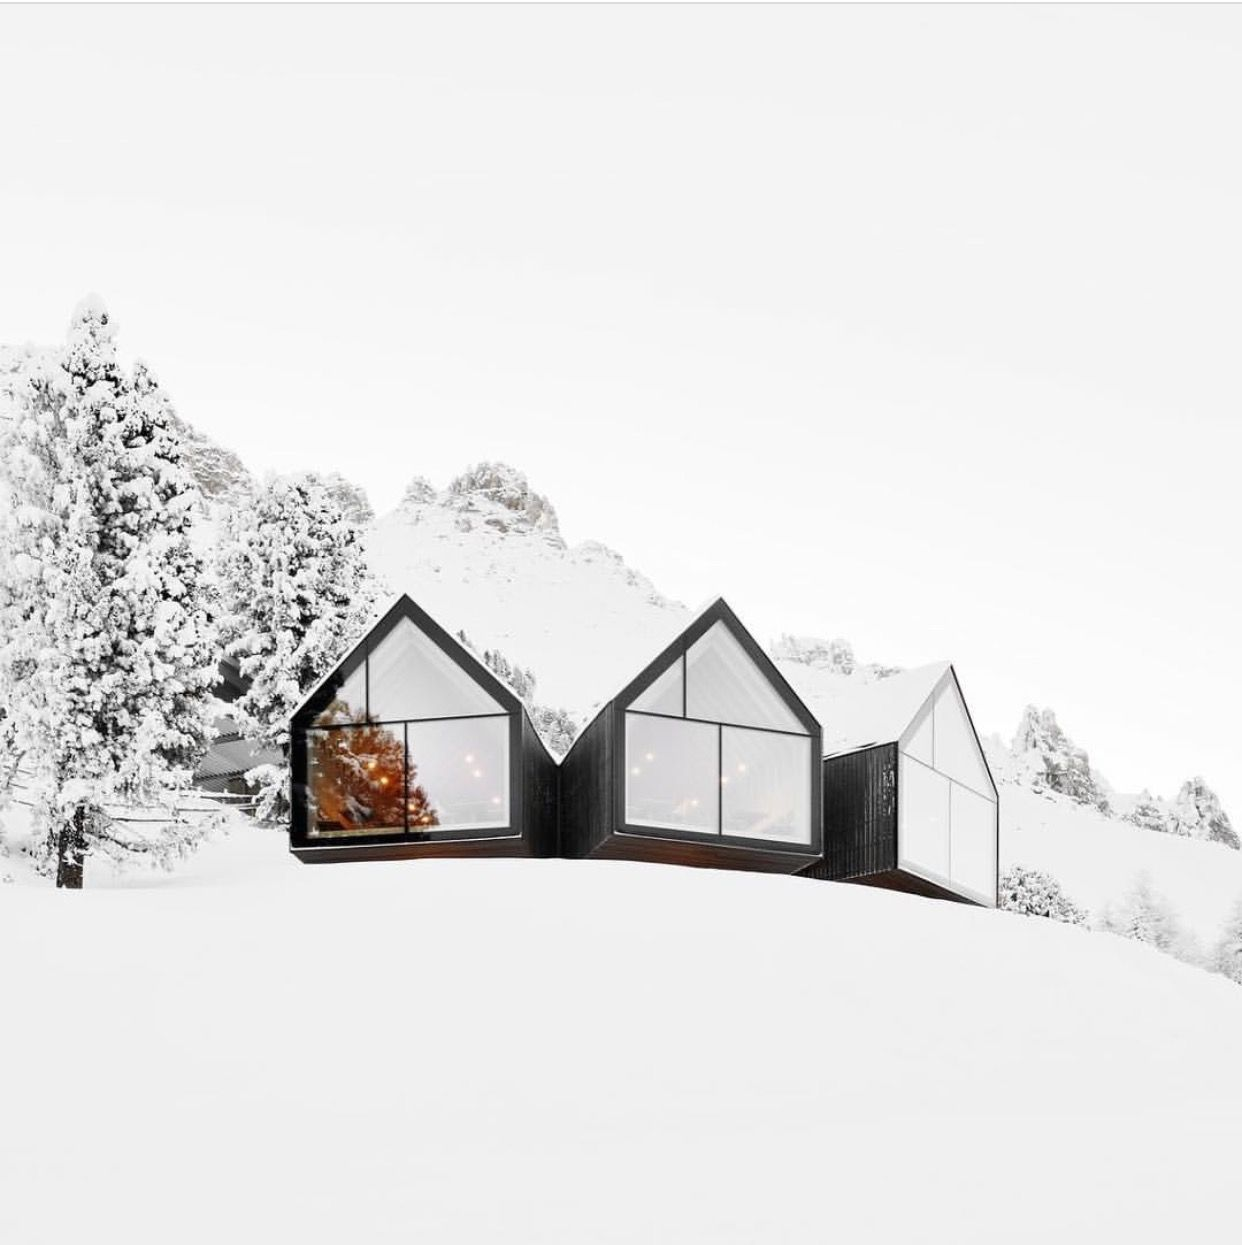 Up Knorth Modern Mountain Cabin Oberholz Mountain Hut In Mountain Architecture Mountain Modern Mountain Huts